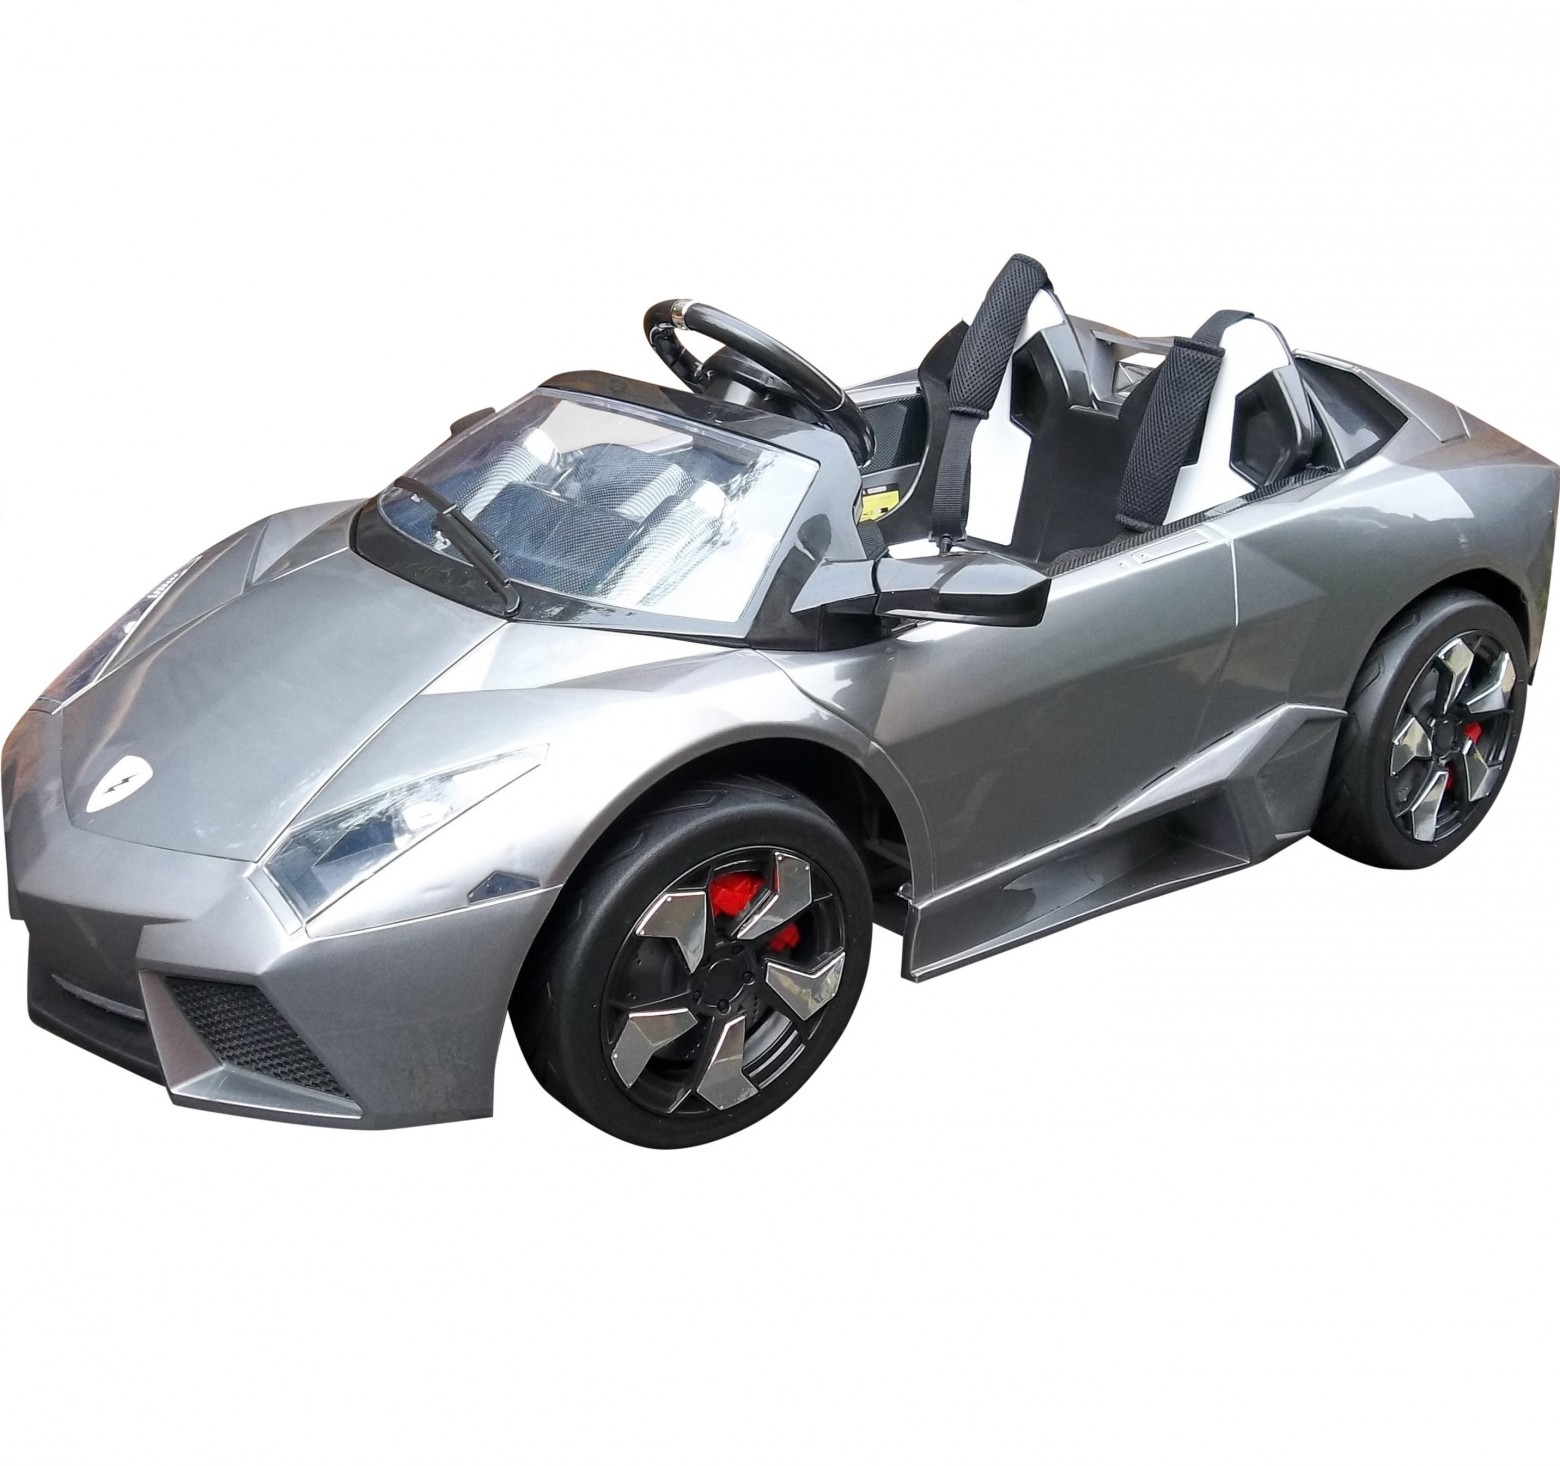 rebo lamborghini style 12v kids electric car with remote control grey